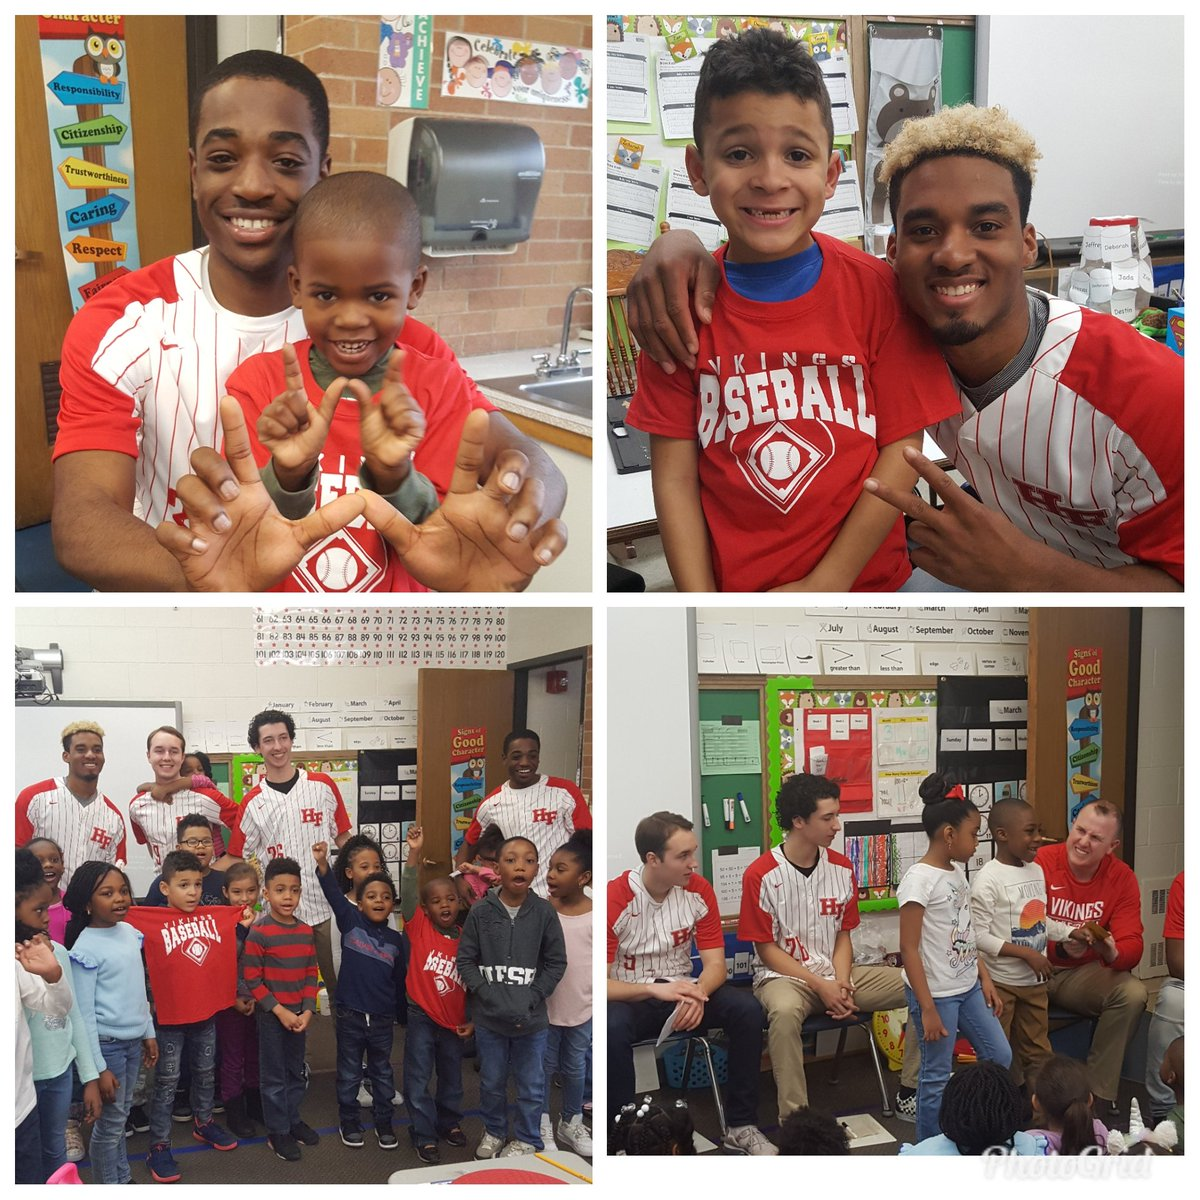 Thank you to the H-F Baseball team for visiting our 1st grade class and talking about the importance of kindness! #payitforward @HFHSAthletics @HFHS_BASEBALL #d161Learns<br>http://pic.twitter.com/zcokoQAzv8